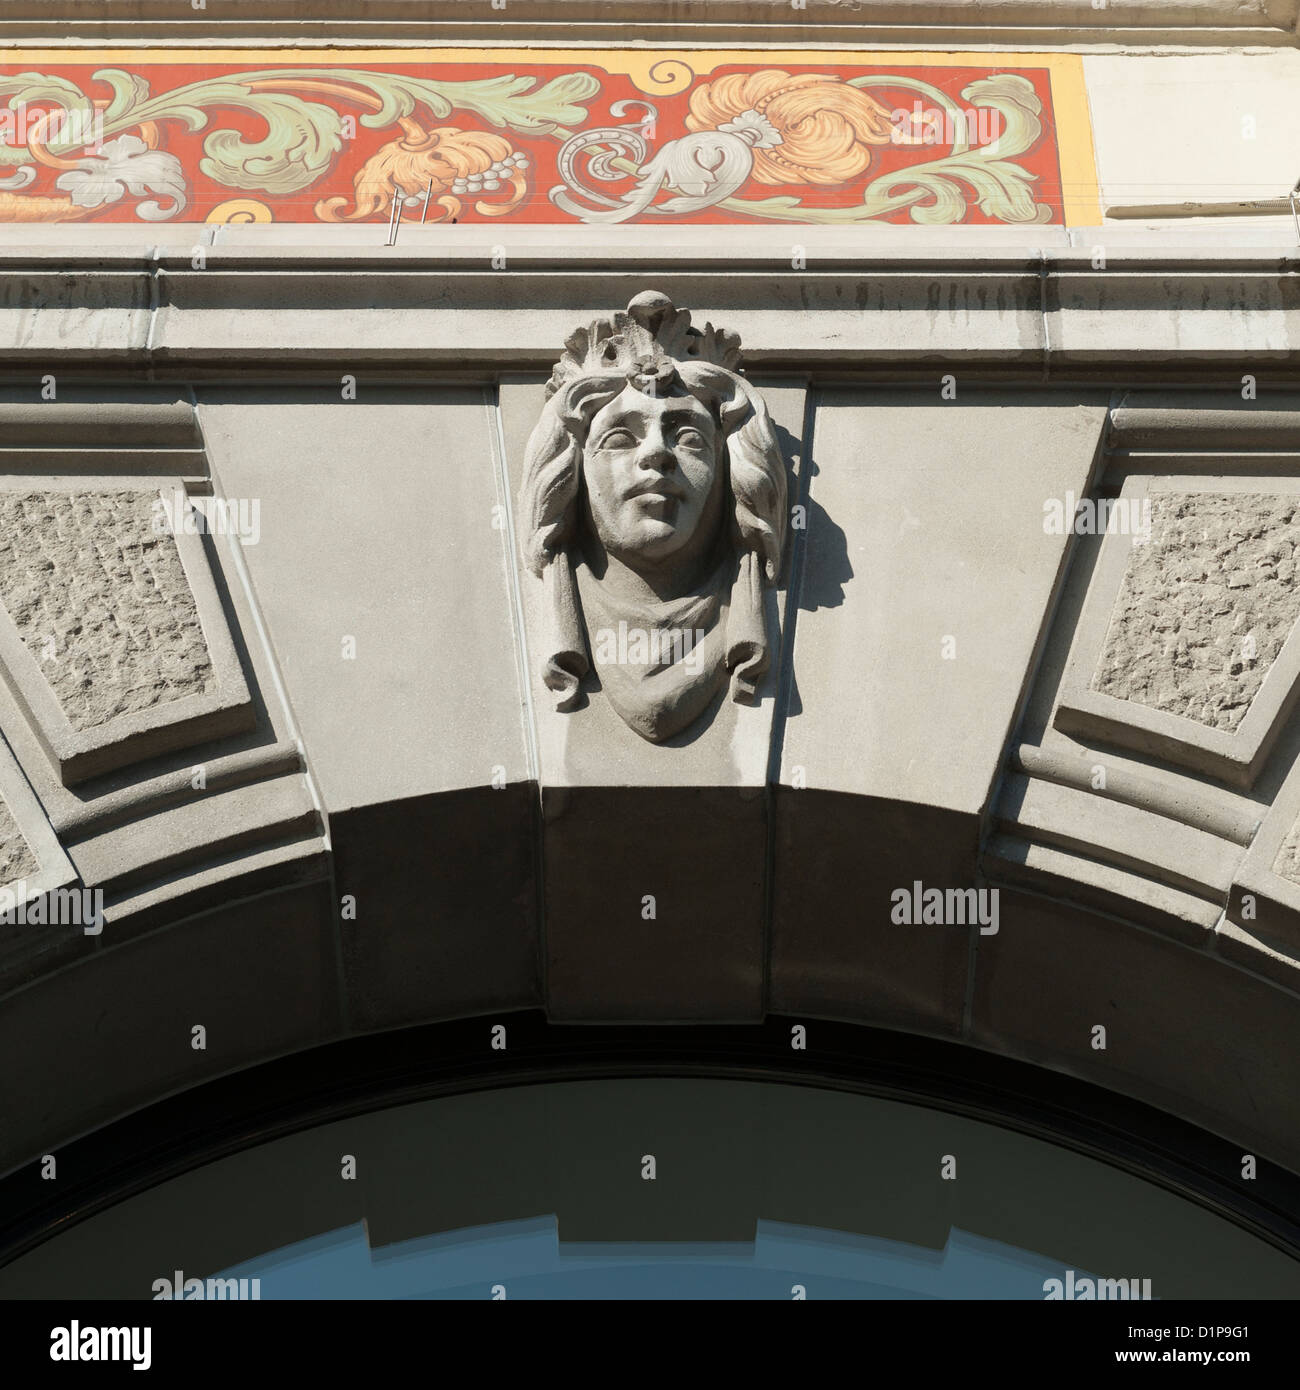 Architectural detail of a building, Bahnhofstrasse, Zurich, Switzerland - Stock Image